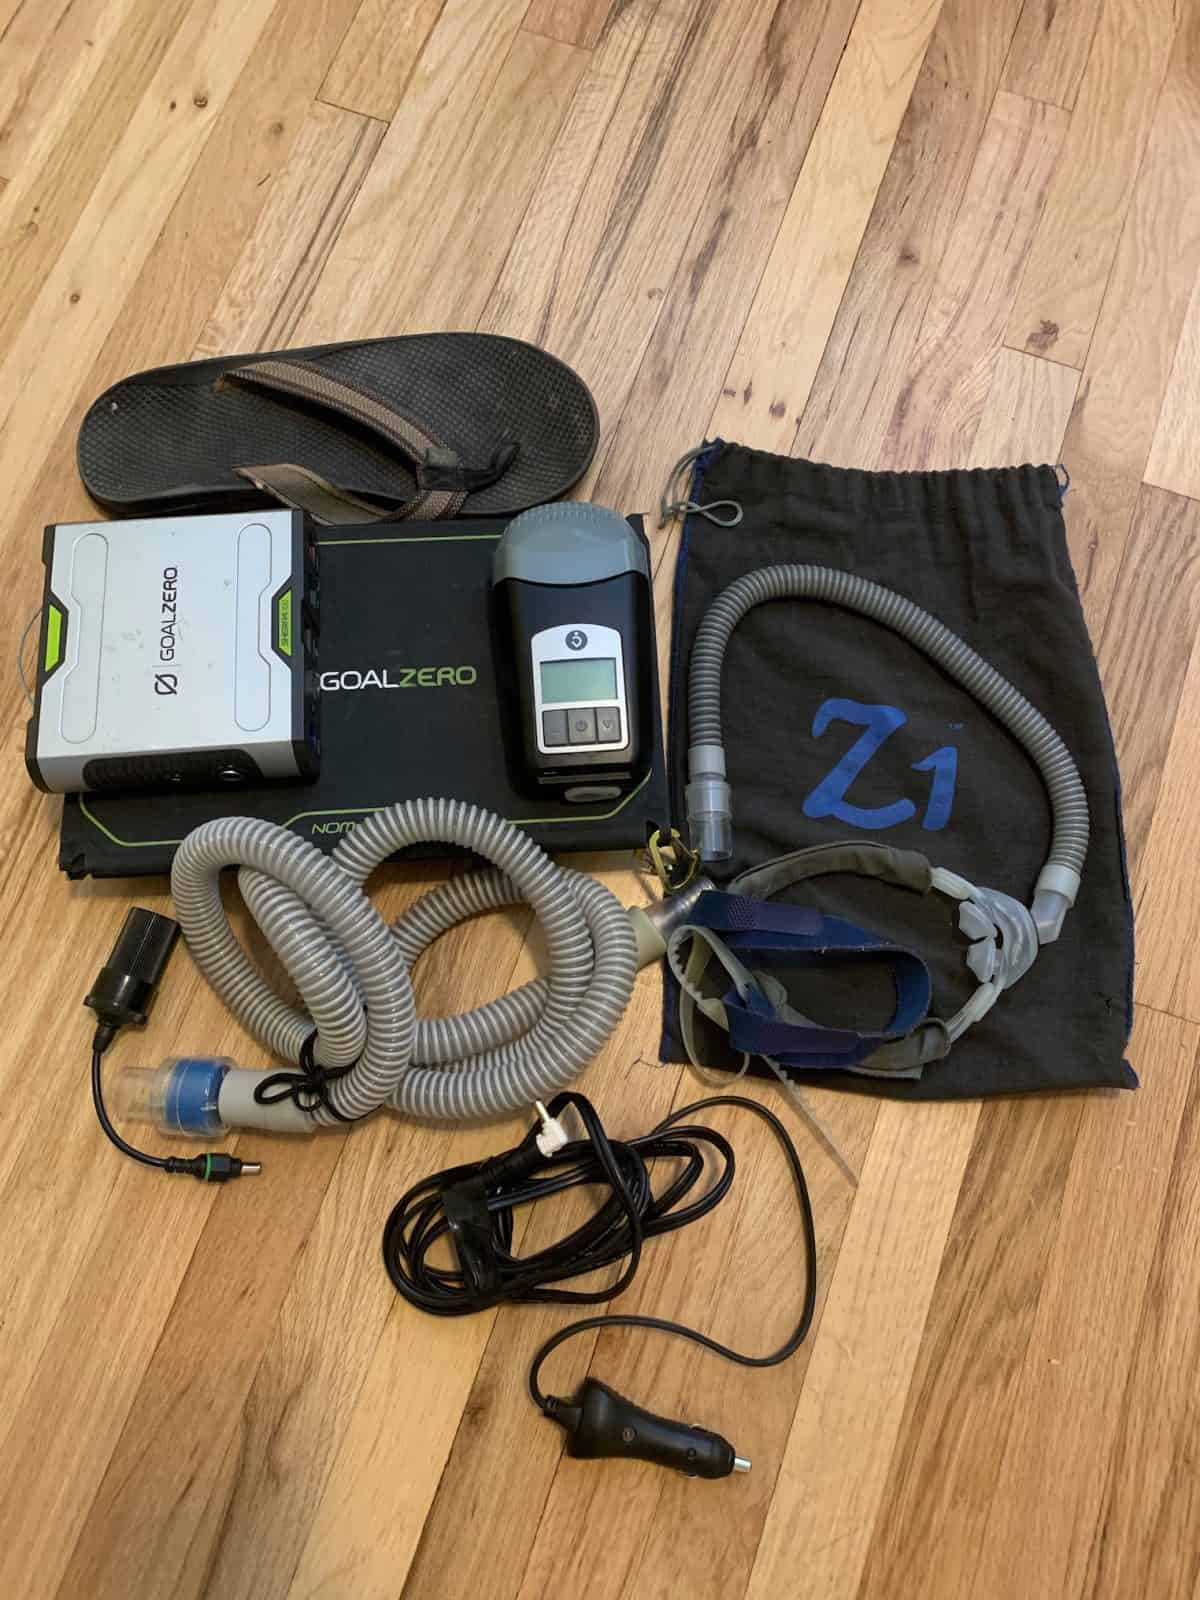 Complete Solar CPAP kit with size 12 Chaco sandal for scale